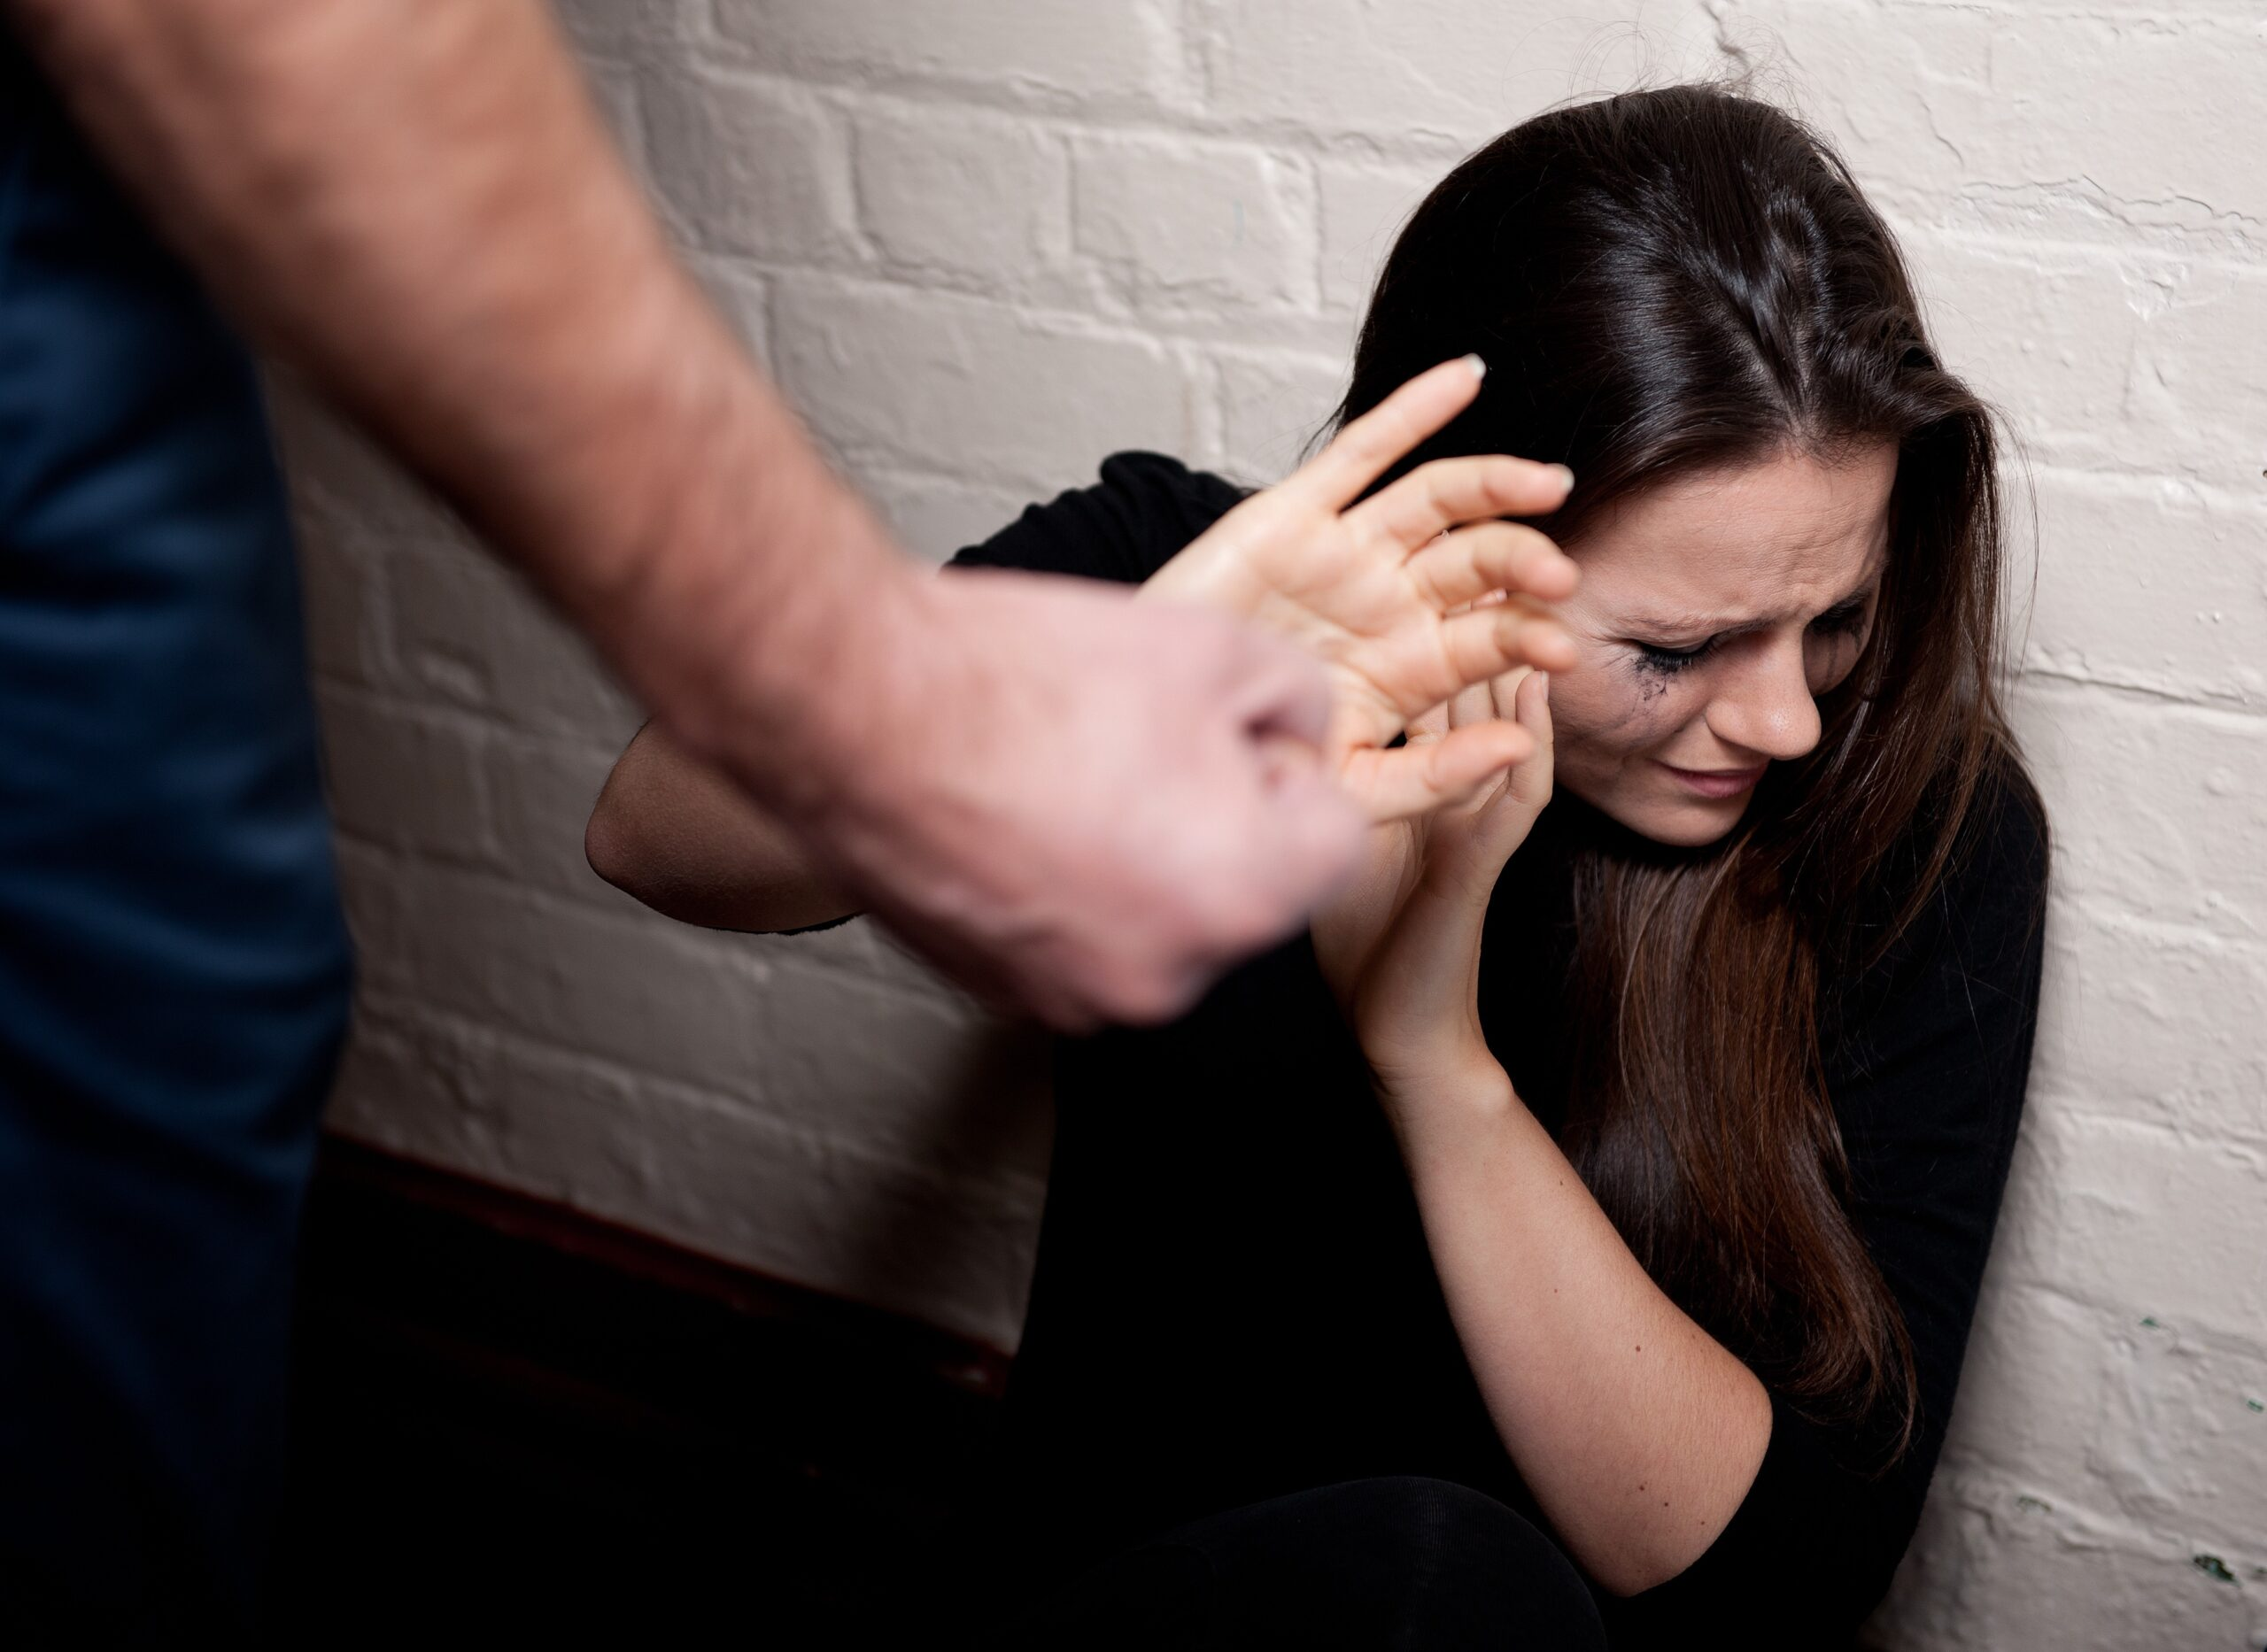 battered woman syndrome case